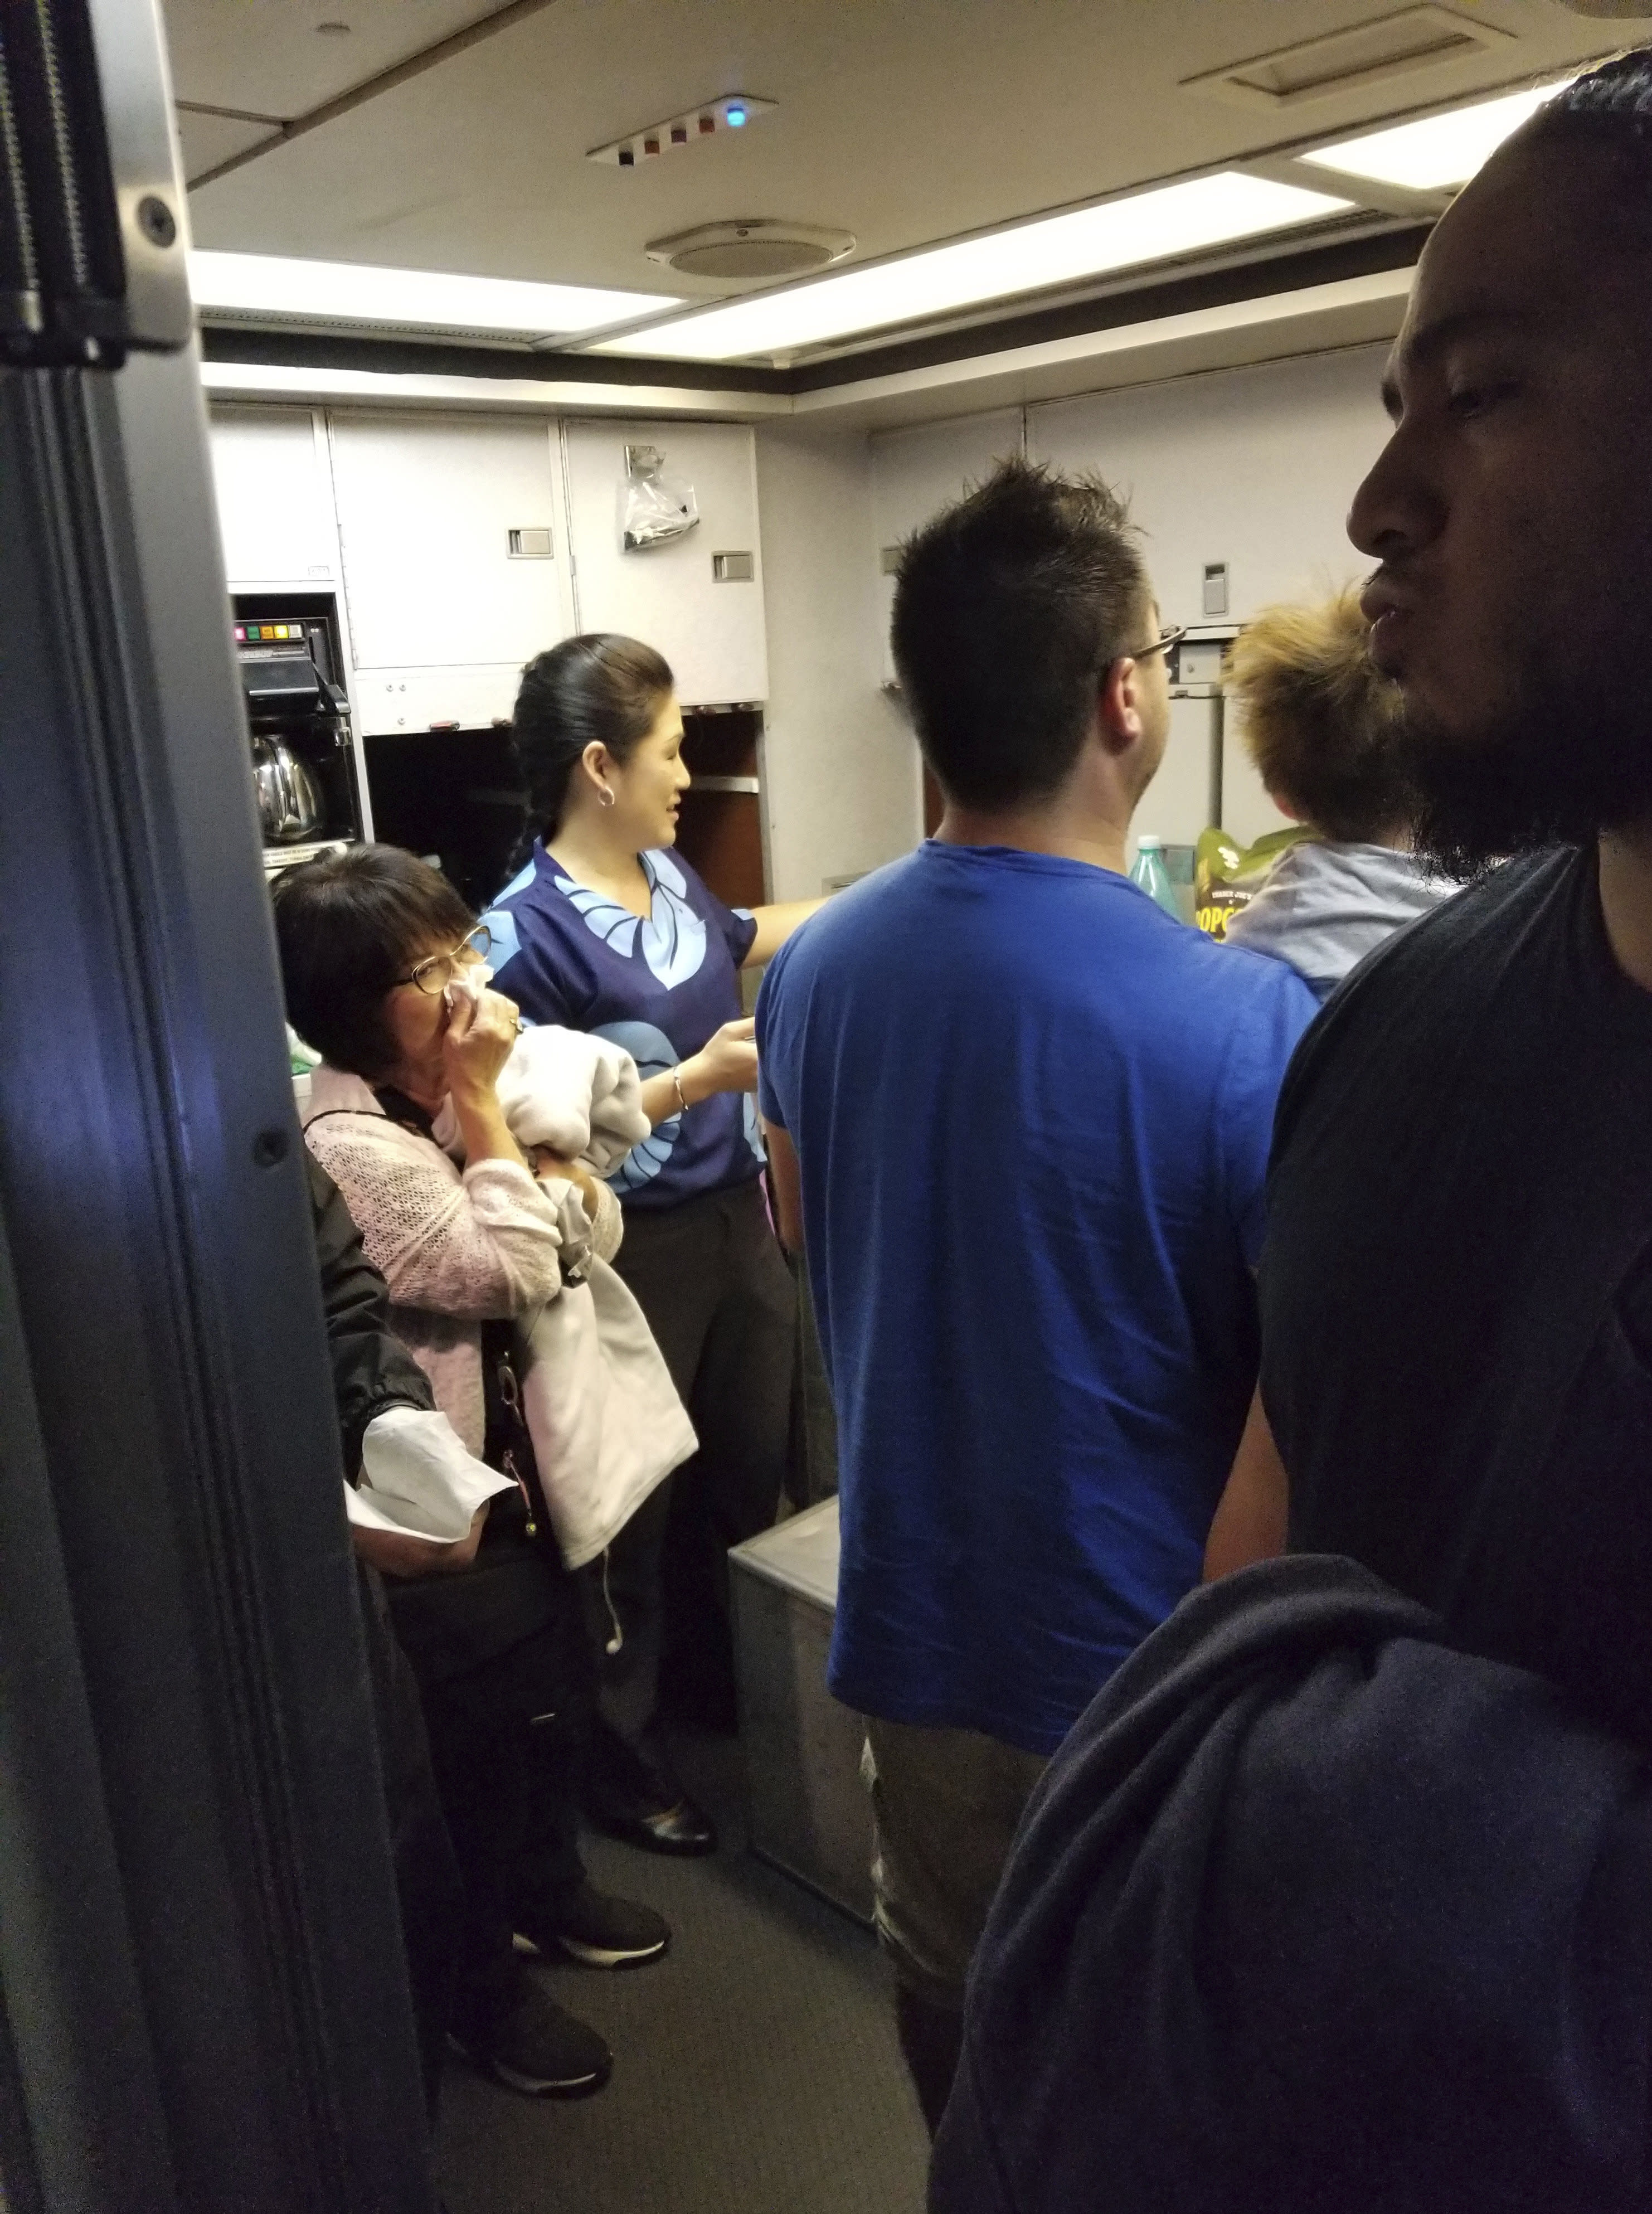 This Friday, Aug. 31, 2018 photo provided by Nicholas Andrade shows people gathered in a back galley on a Hawaiian Airlines flight from Oakland, Calif., to Kahului, Hawaii, after a can of pepper spray went off inside the plane. Twelve passengers and three flight attendants were treated for respiratory issues and released by emergency responders at the airport in Kahului, which is on the island of Maui. (Nicholas Andrade via AP)